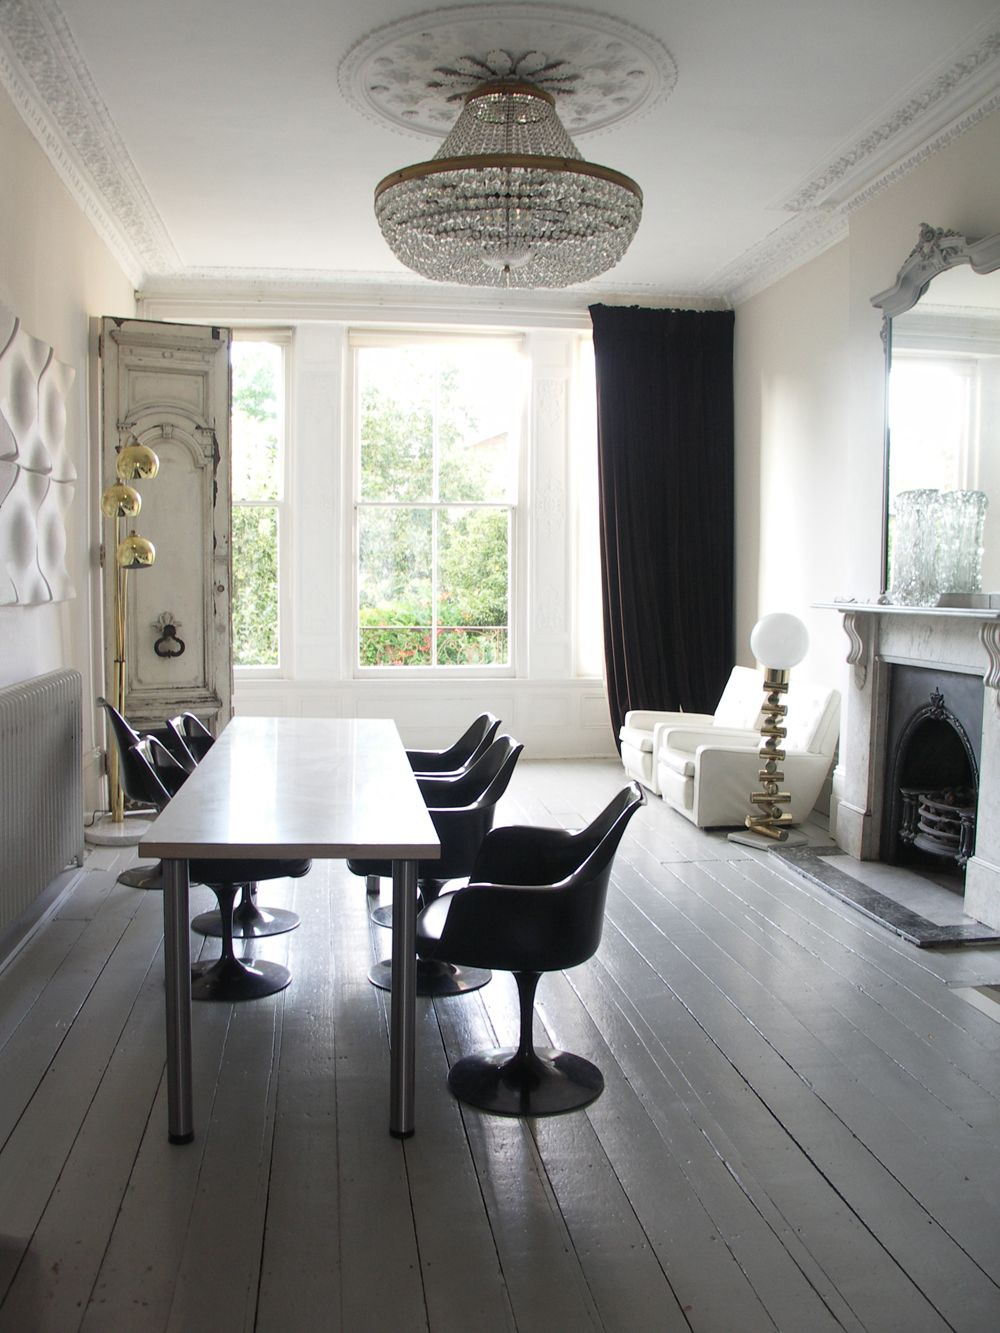 victorian house furniture. Victorian House North London With Eclectic Mix Of Furniture. Furniture